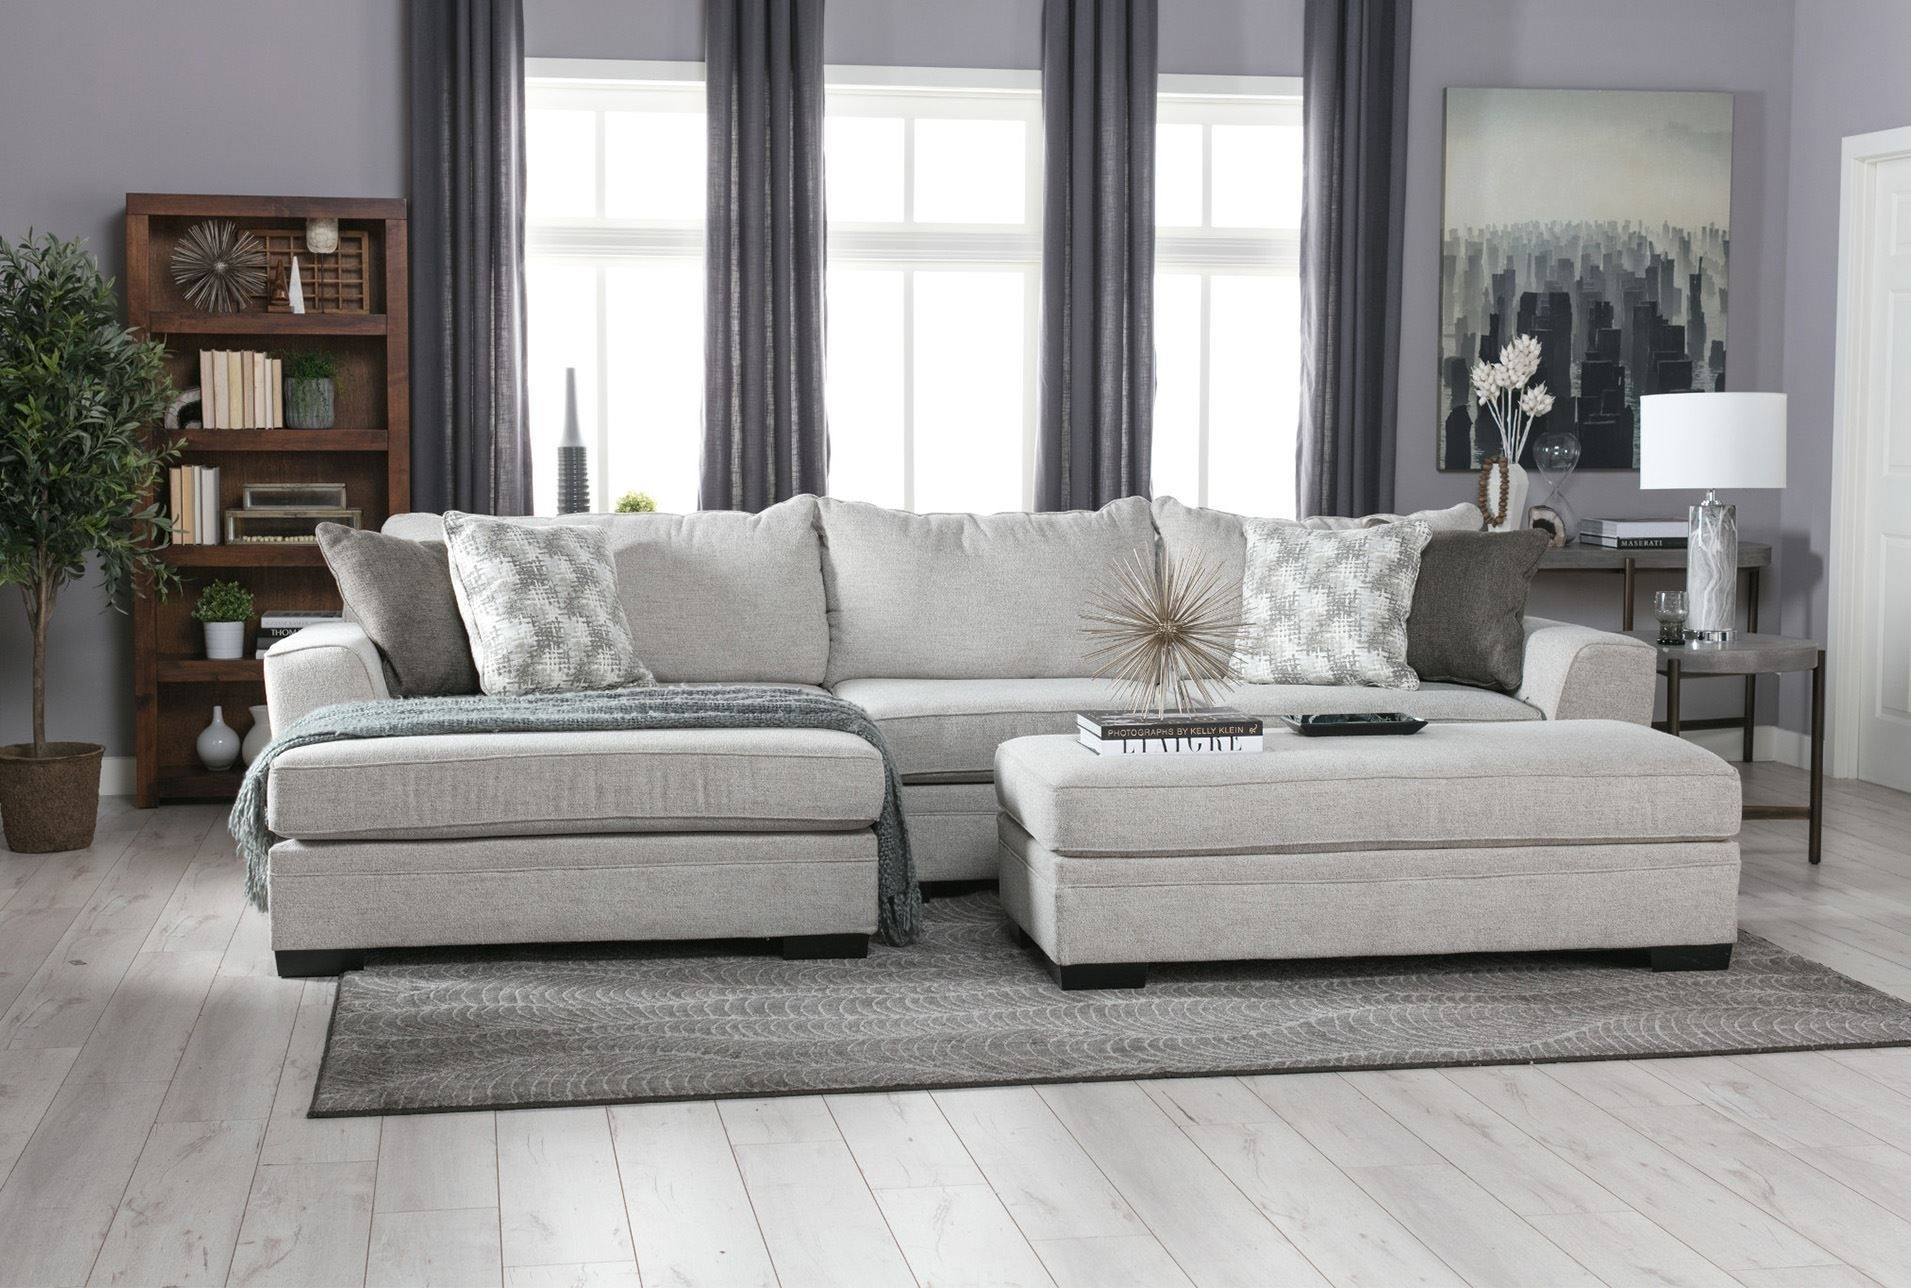 Delano 2 Piece Sectional W/laf Oversized Chaise | Sylvia Son Within Marissa Ii 3 Piece Sectionals (Image 3 of 25)